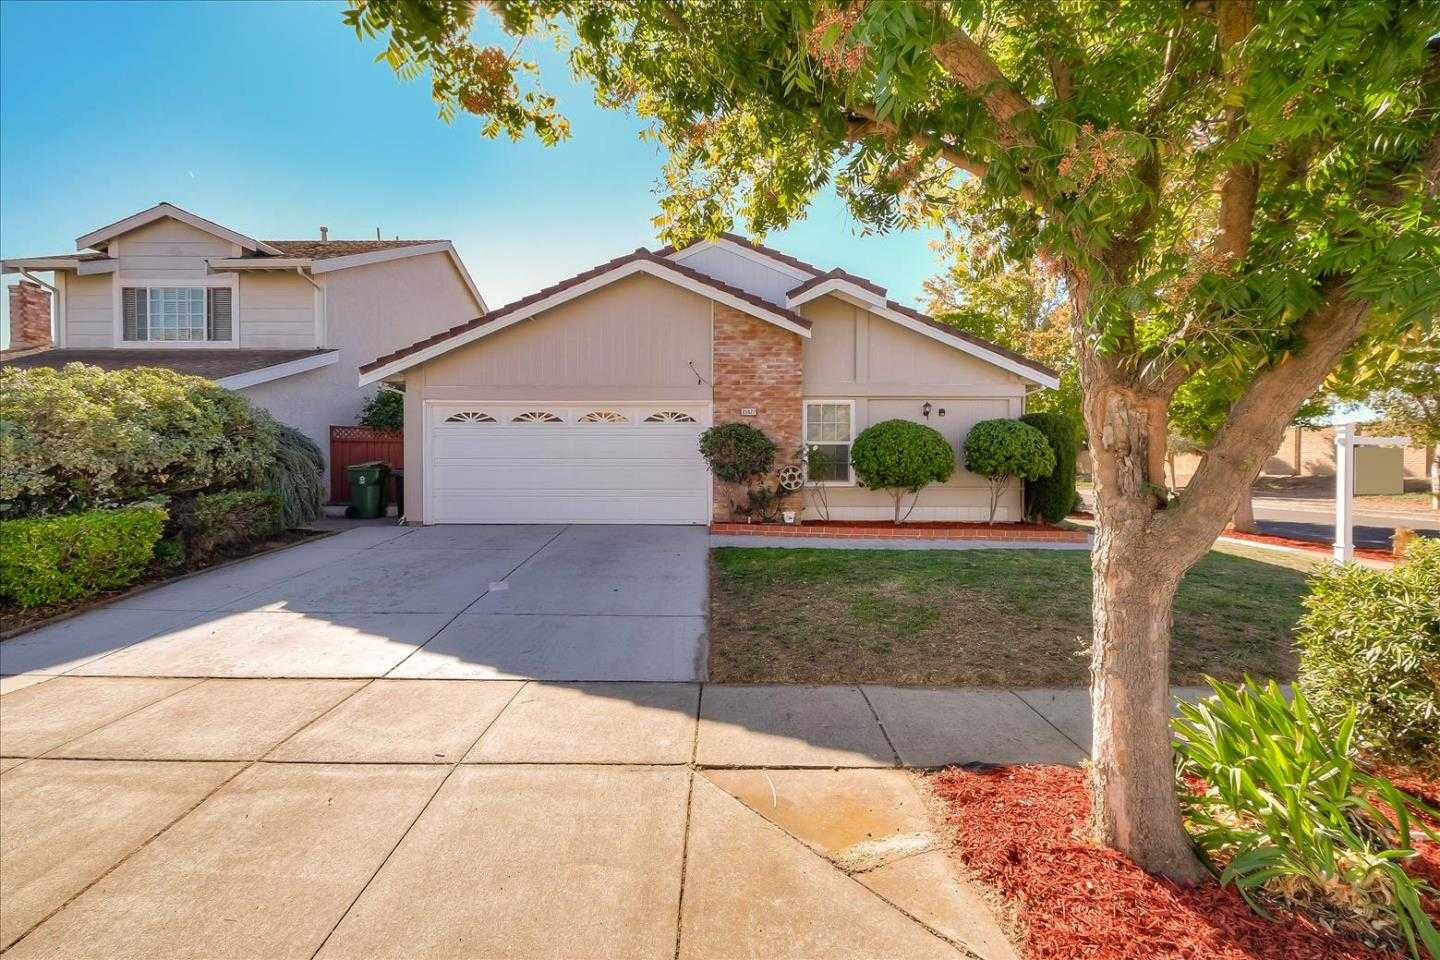 $1,158,000 - 4Br/2Ba -  for Sale in Fremont